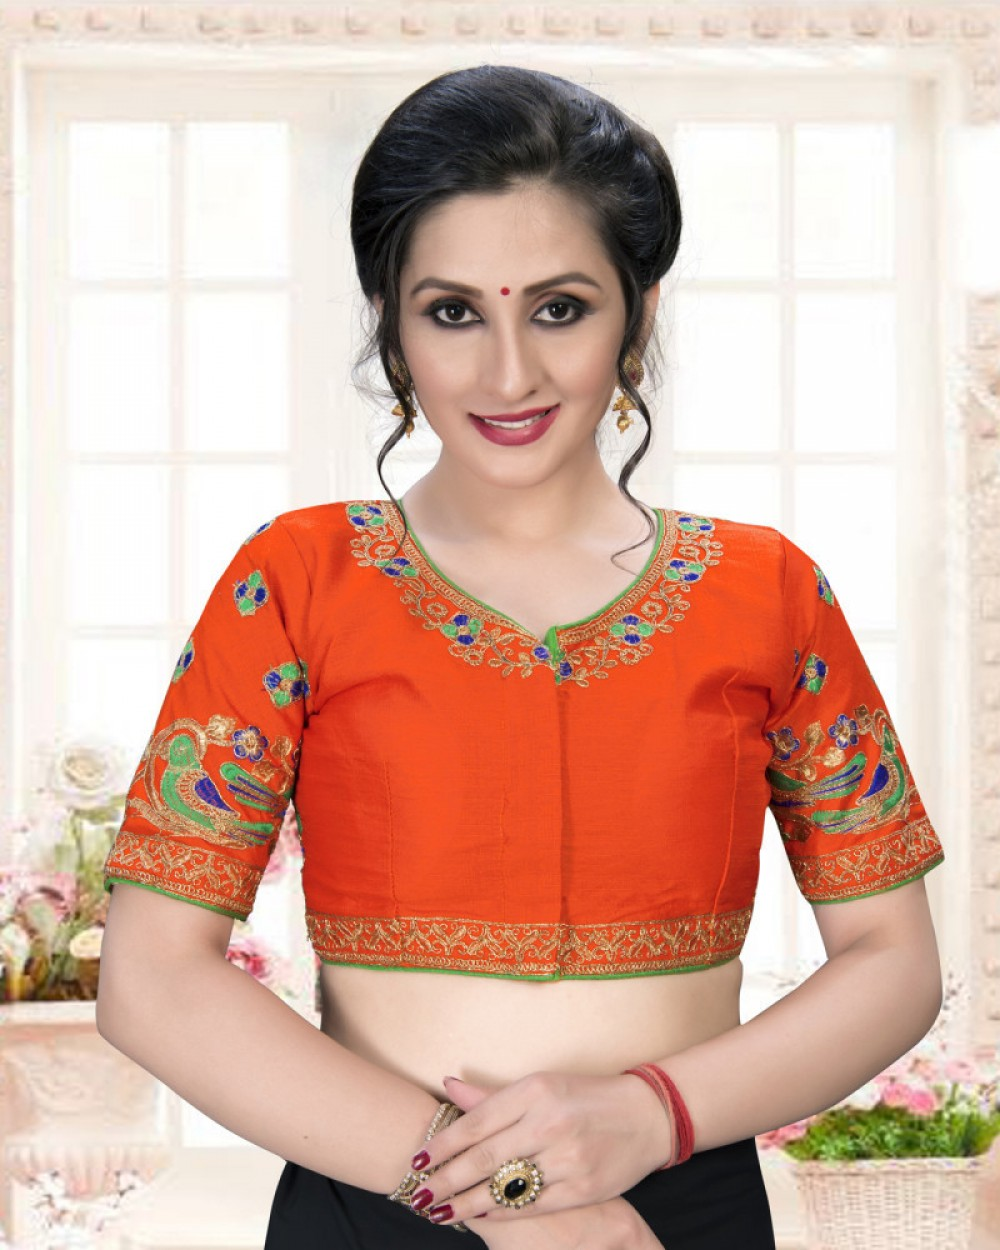 Outstanding Orenge Colour Phantom Silk Stylish Blouse for Women